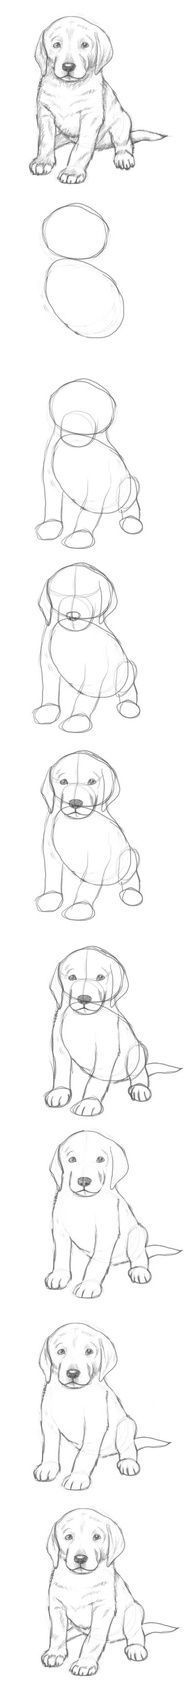 puppy art projects for kids \ puppy art . puppy art projects for kids . puppy art for kids . puppy art for toddlers . Pencil Art Drawings, Art Drawings Sketches, Easy Drawings, Drawing Lessons, Drawing Techniques, Animal Sketches, Animal Drawings, Dog Drawing Simple, Art Tutorials